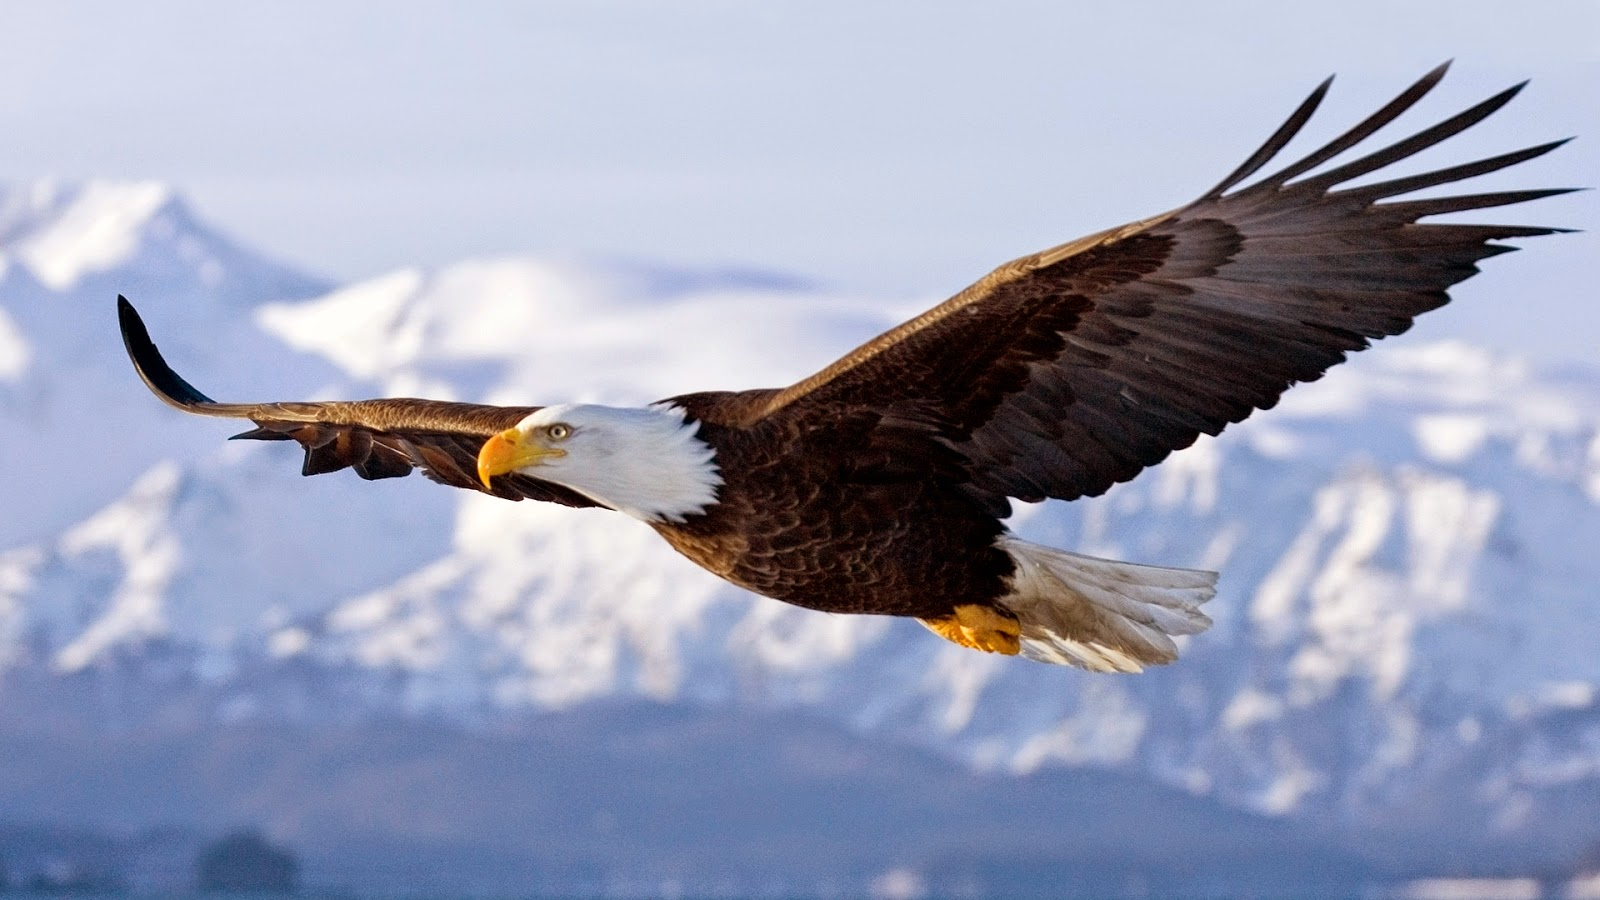 photograph of a bald eagle in flight